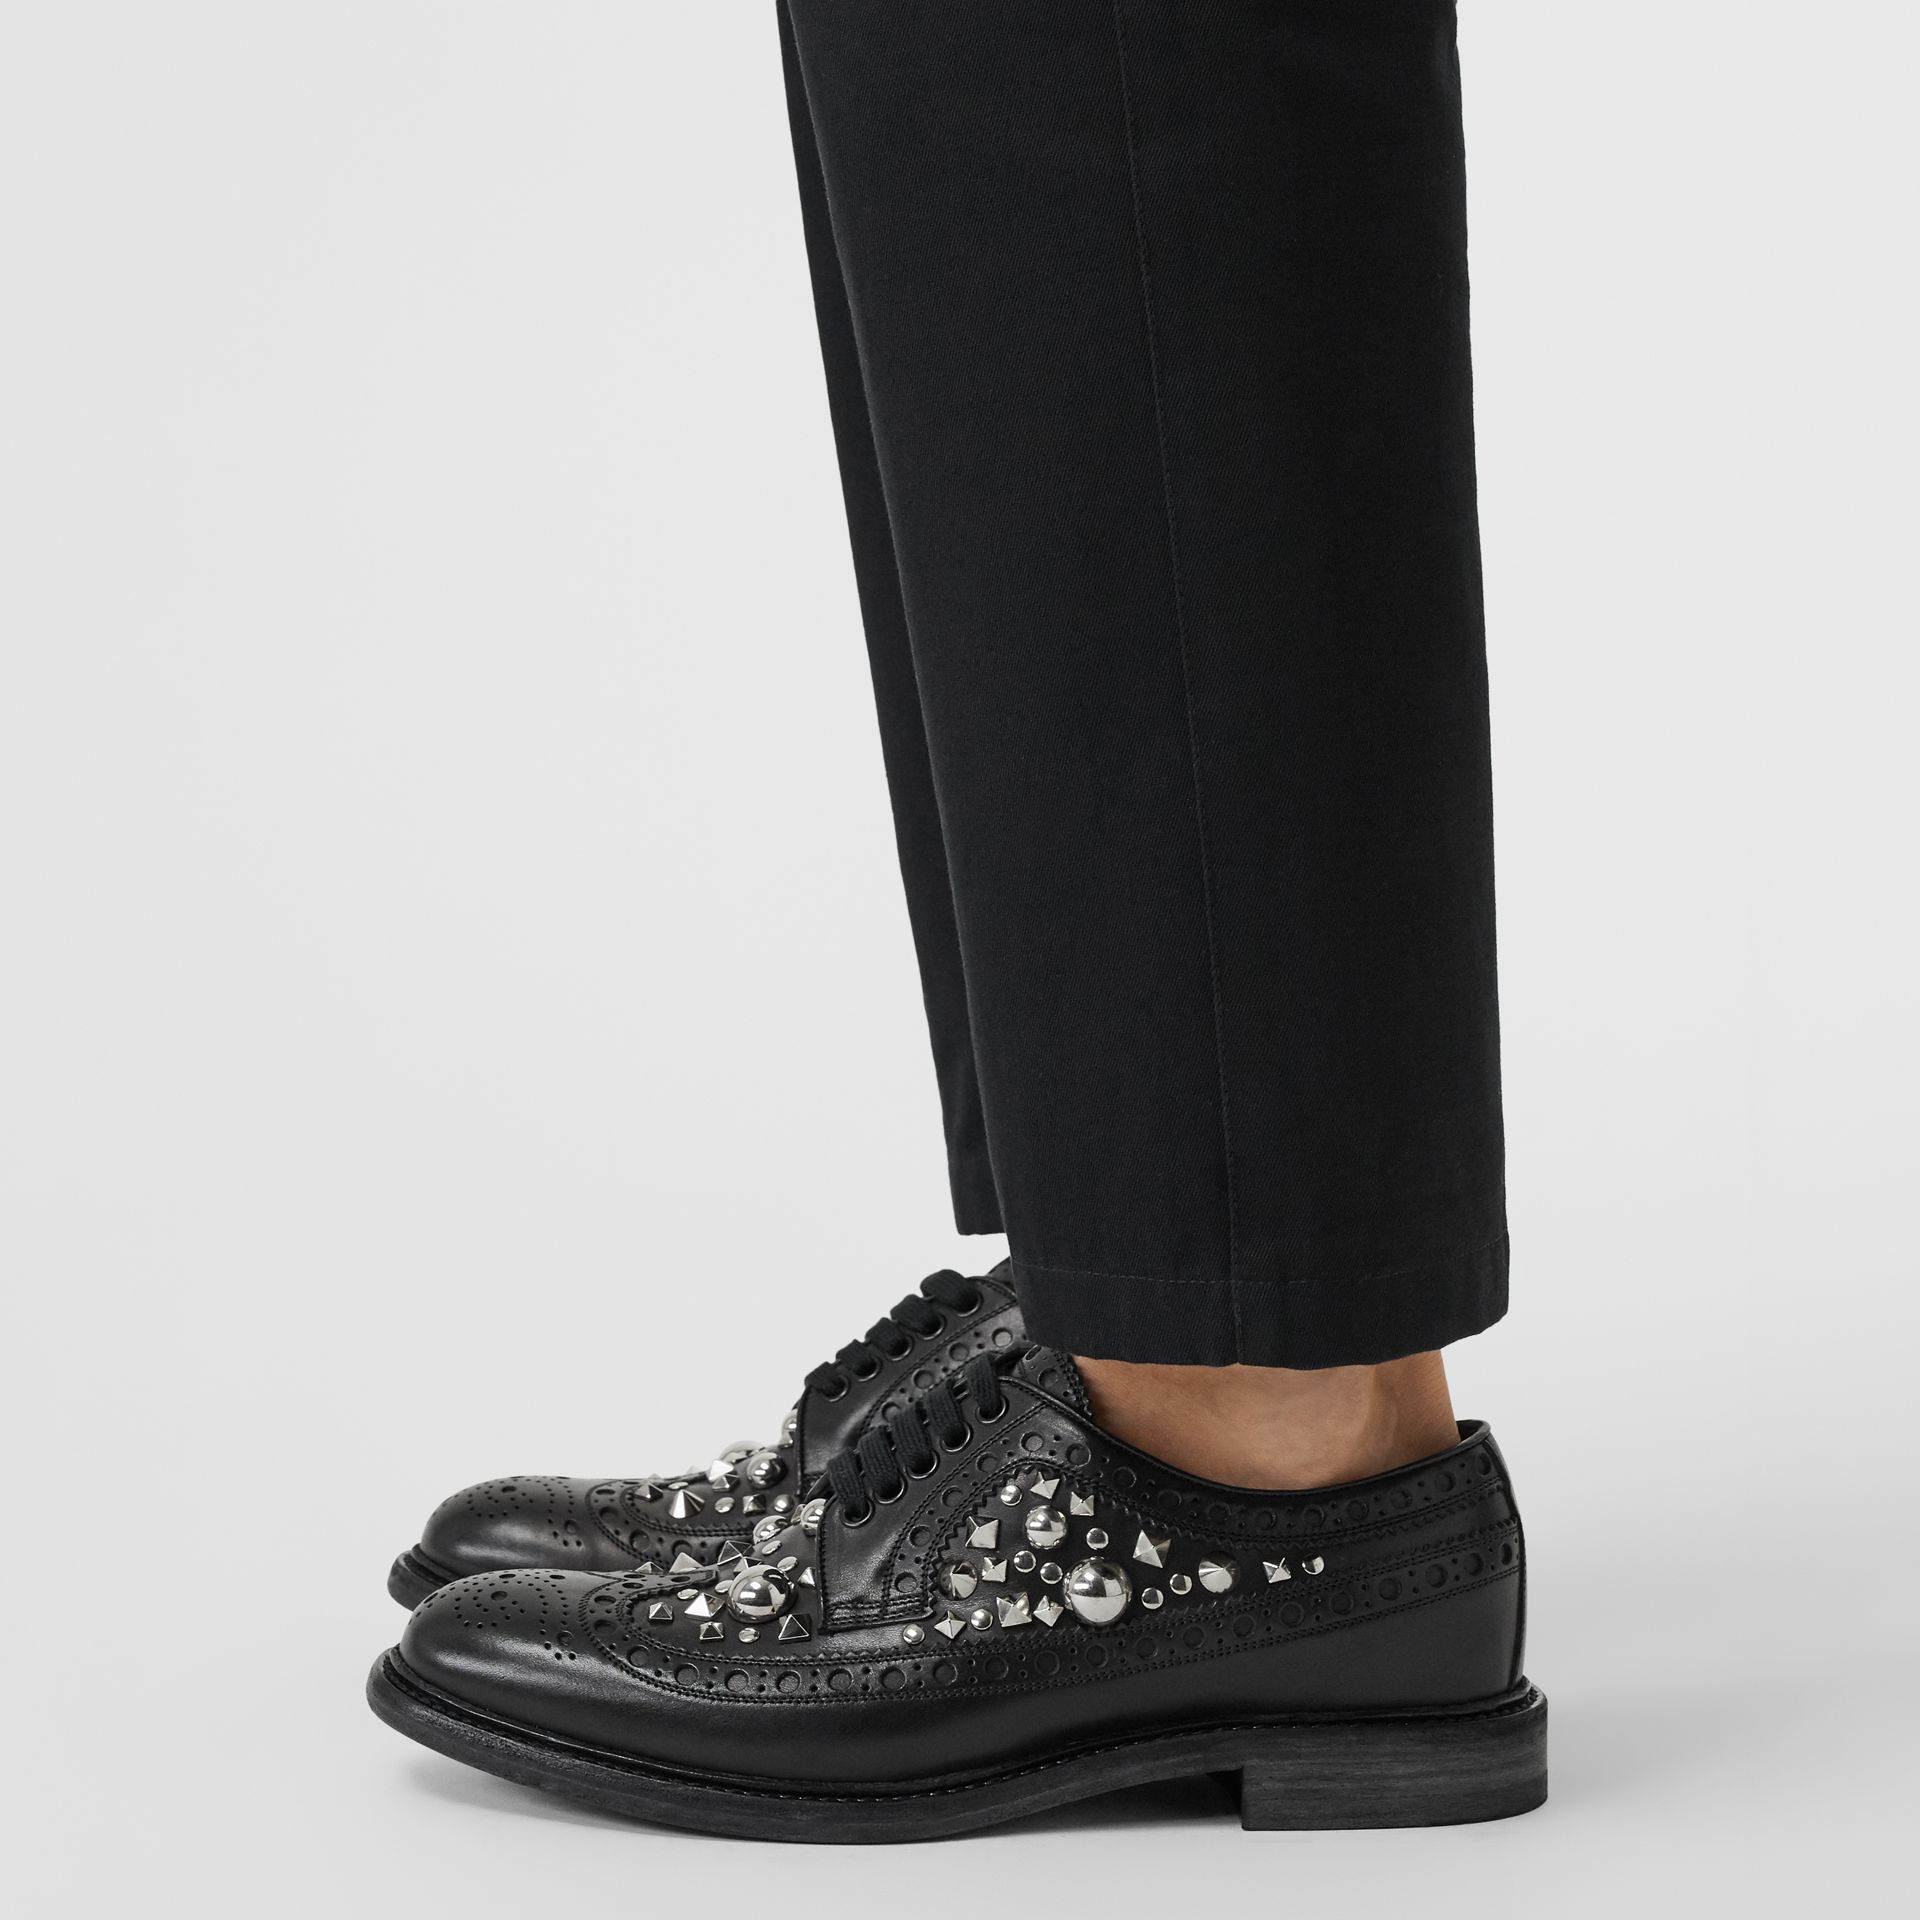 Stud Detail Leather Brogues in Black - Men | Burberry Canada - gallery image 2